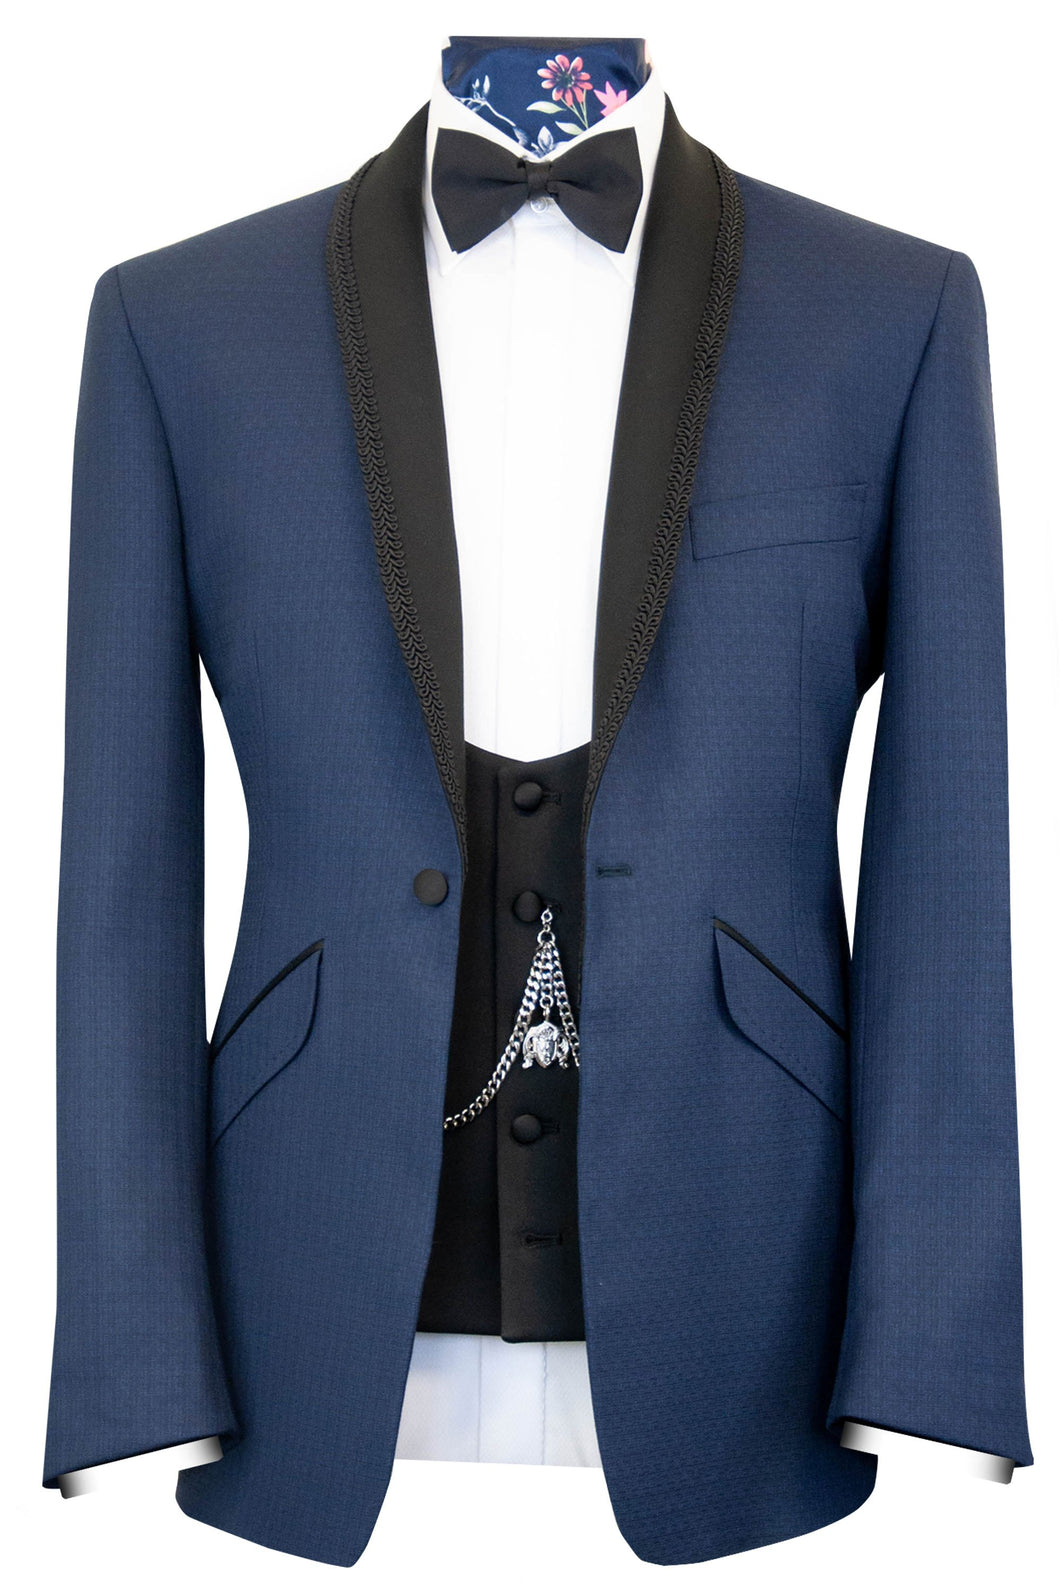 The Dance Navy Dinner Suit